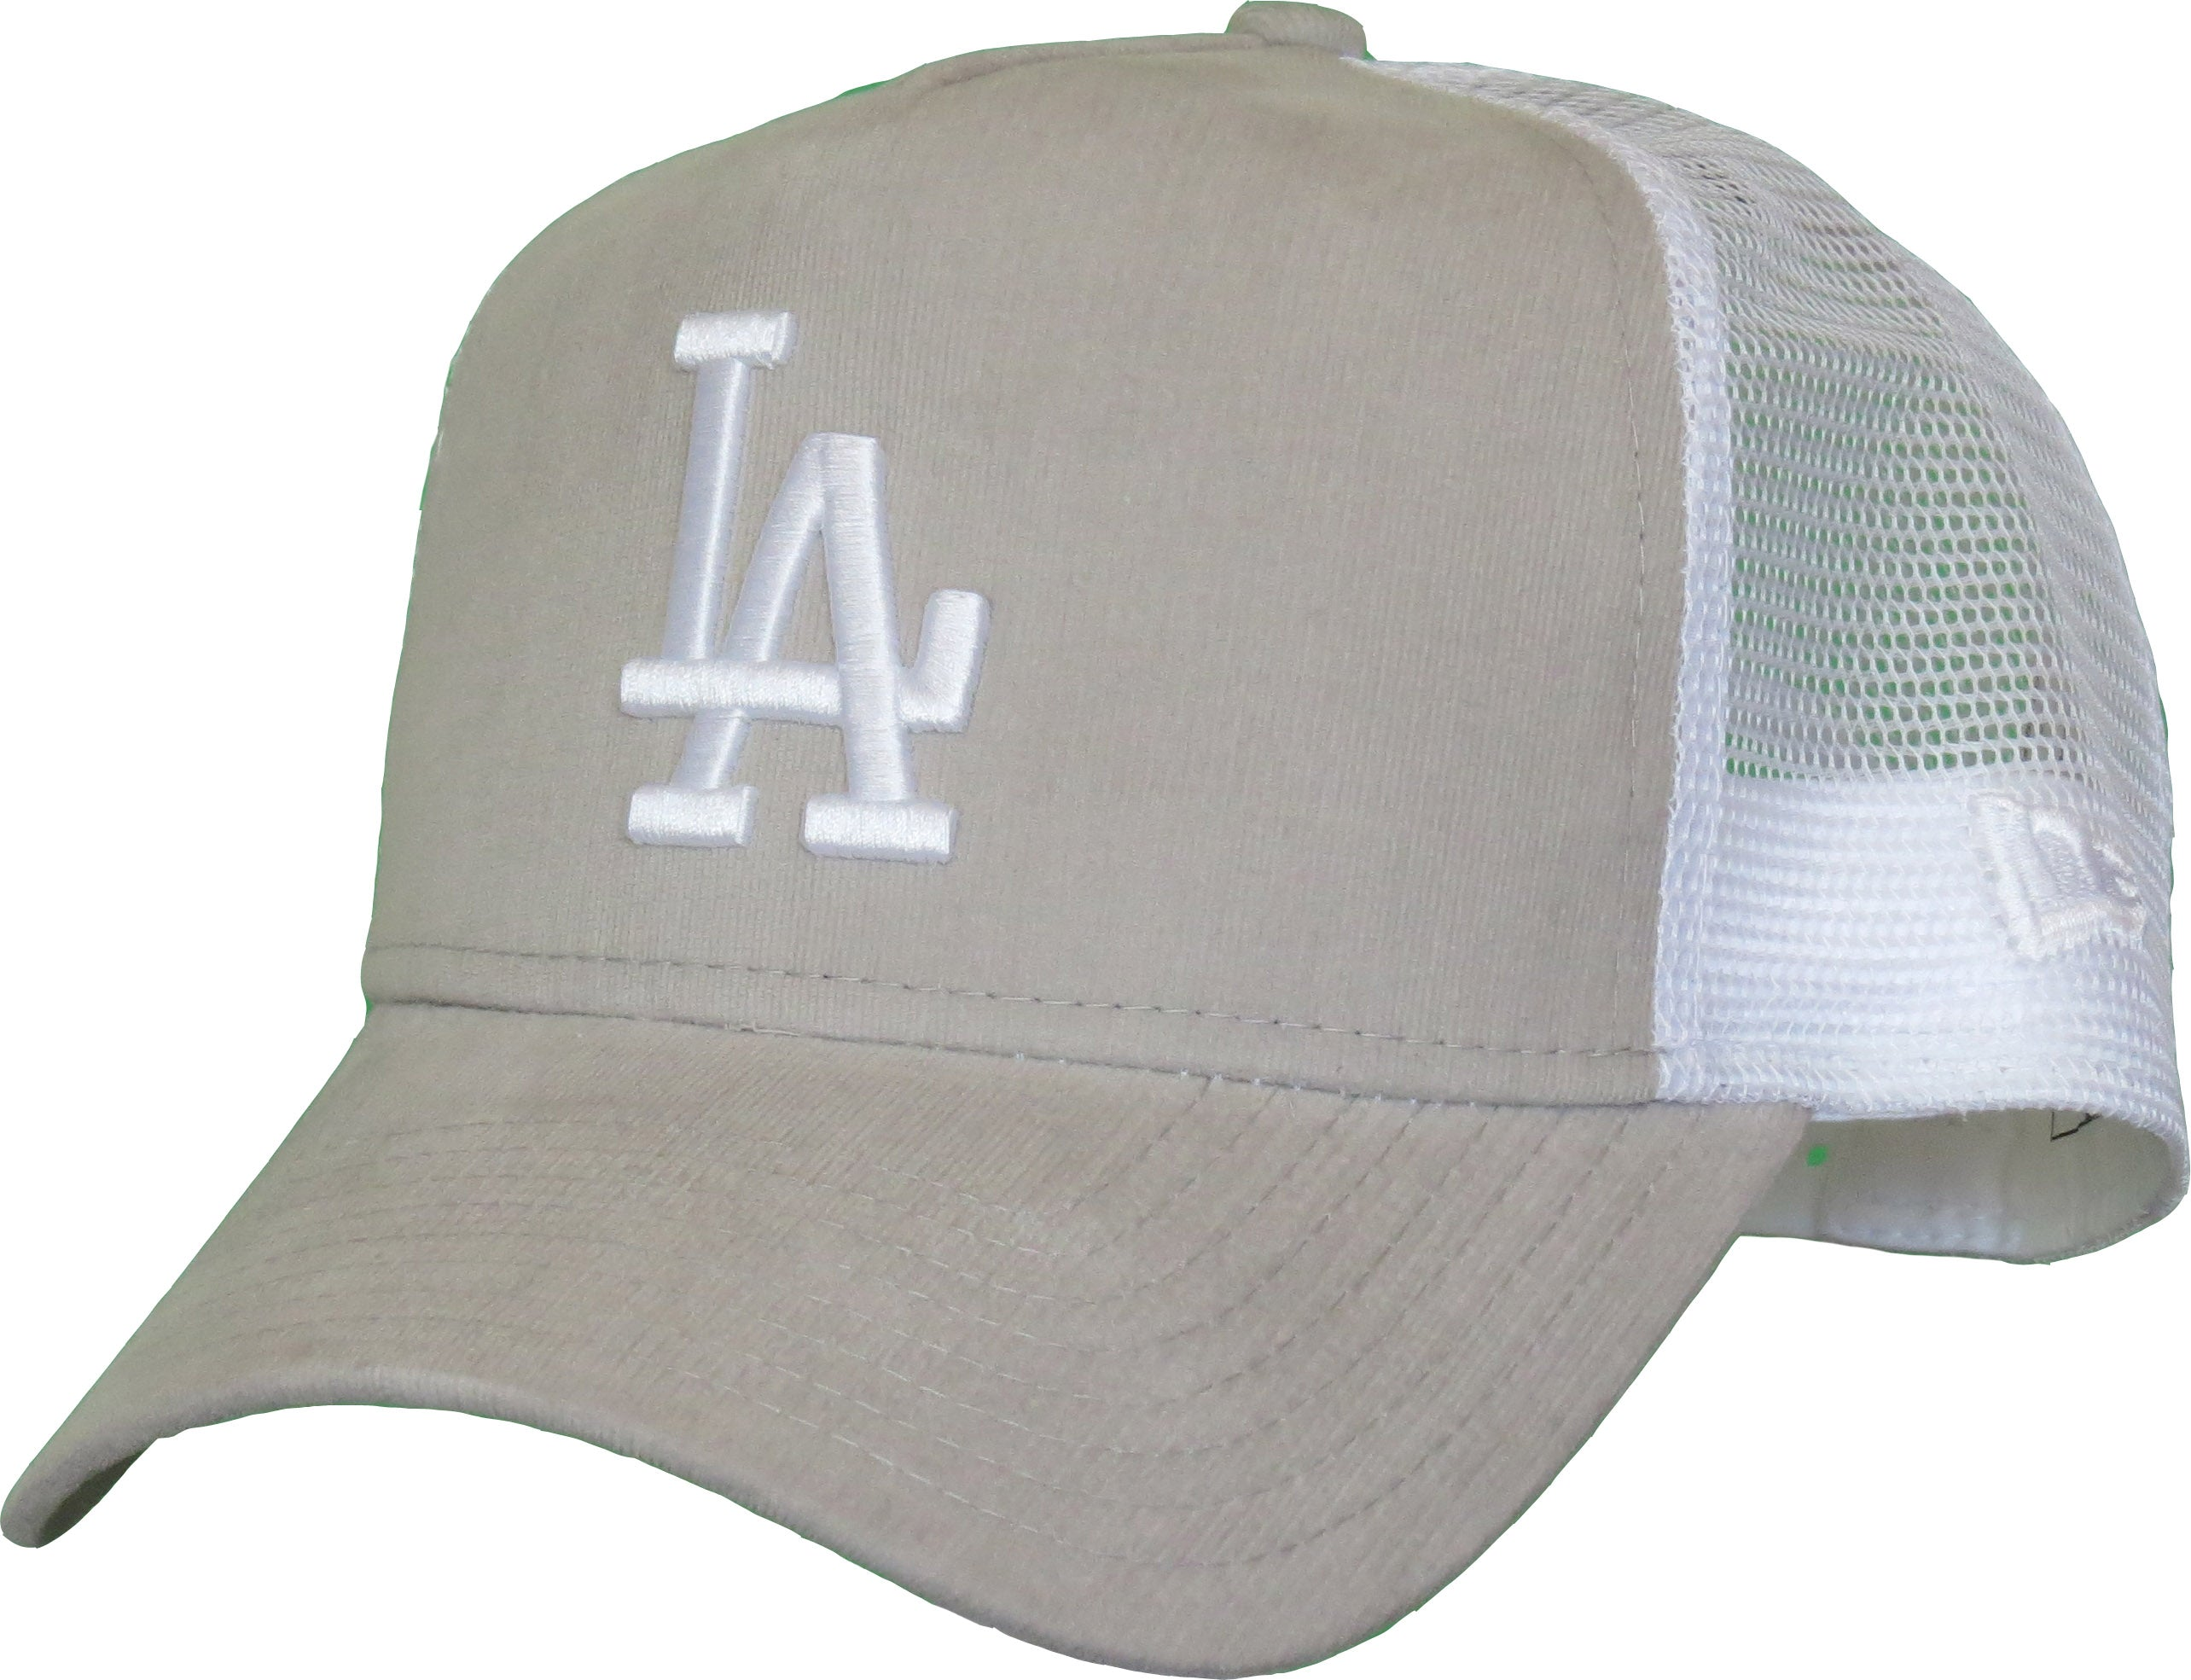 LA Dodgers Womens New Era Micro Cord A-Frame Trucker Cap - pumpheadgear 76e6afbd586